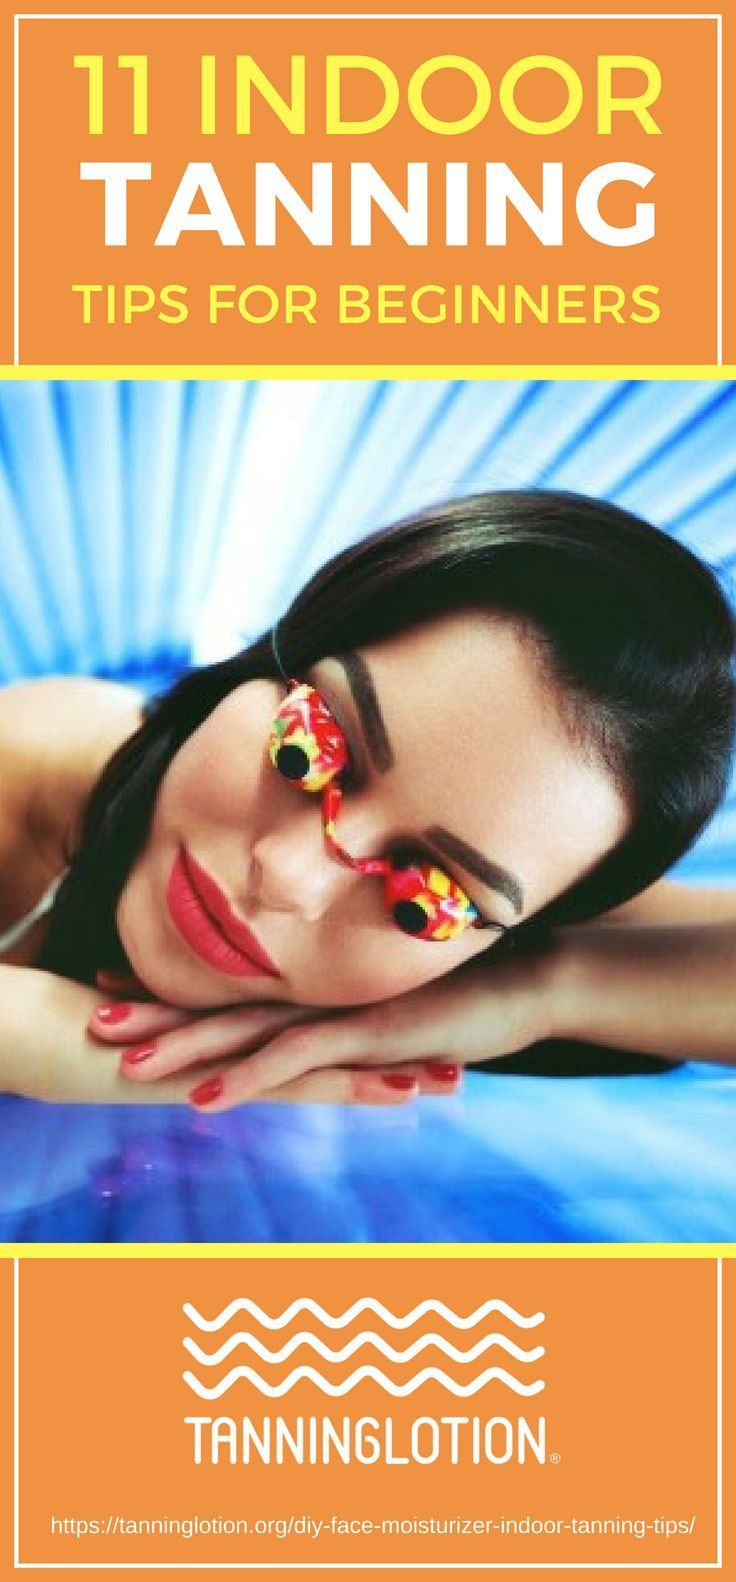 11 Indoor Tanning Tips for Beginners For firsttimers